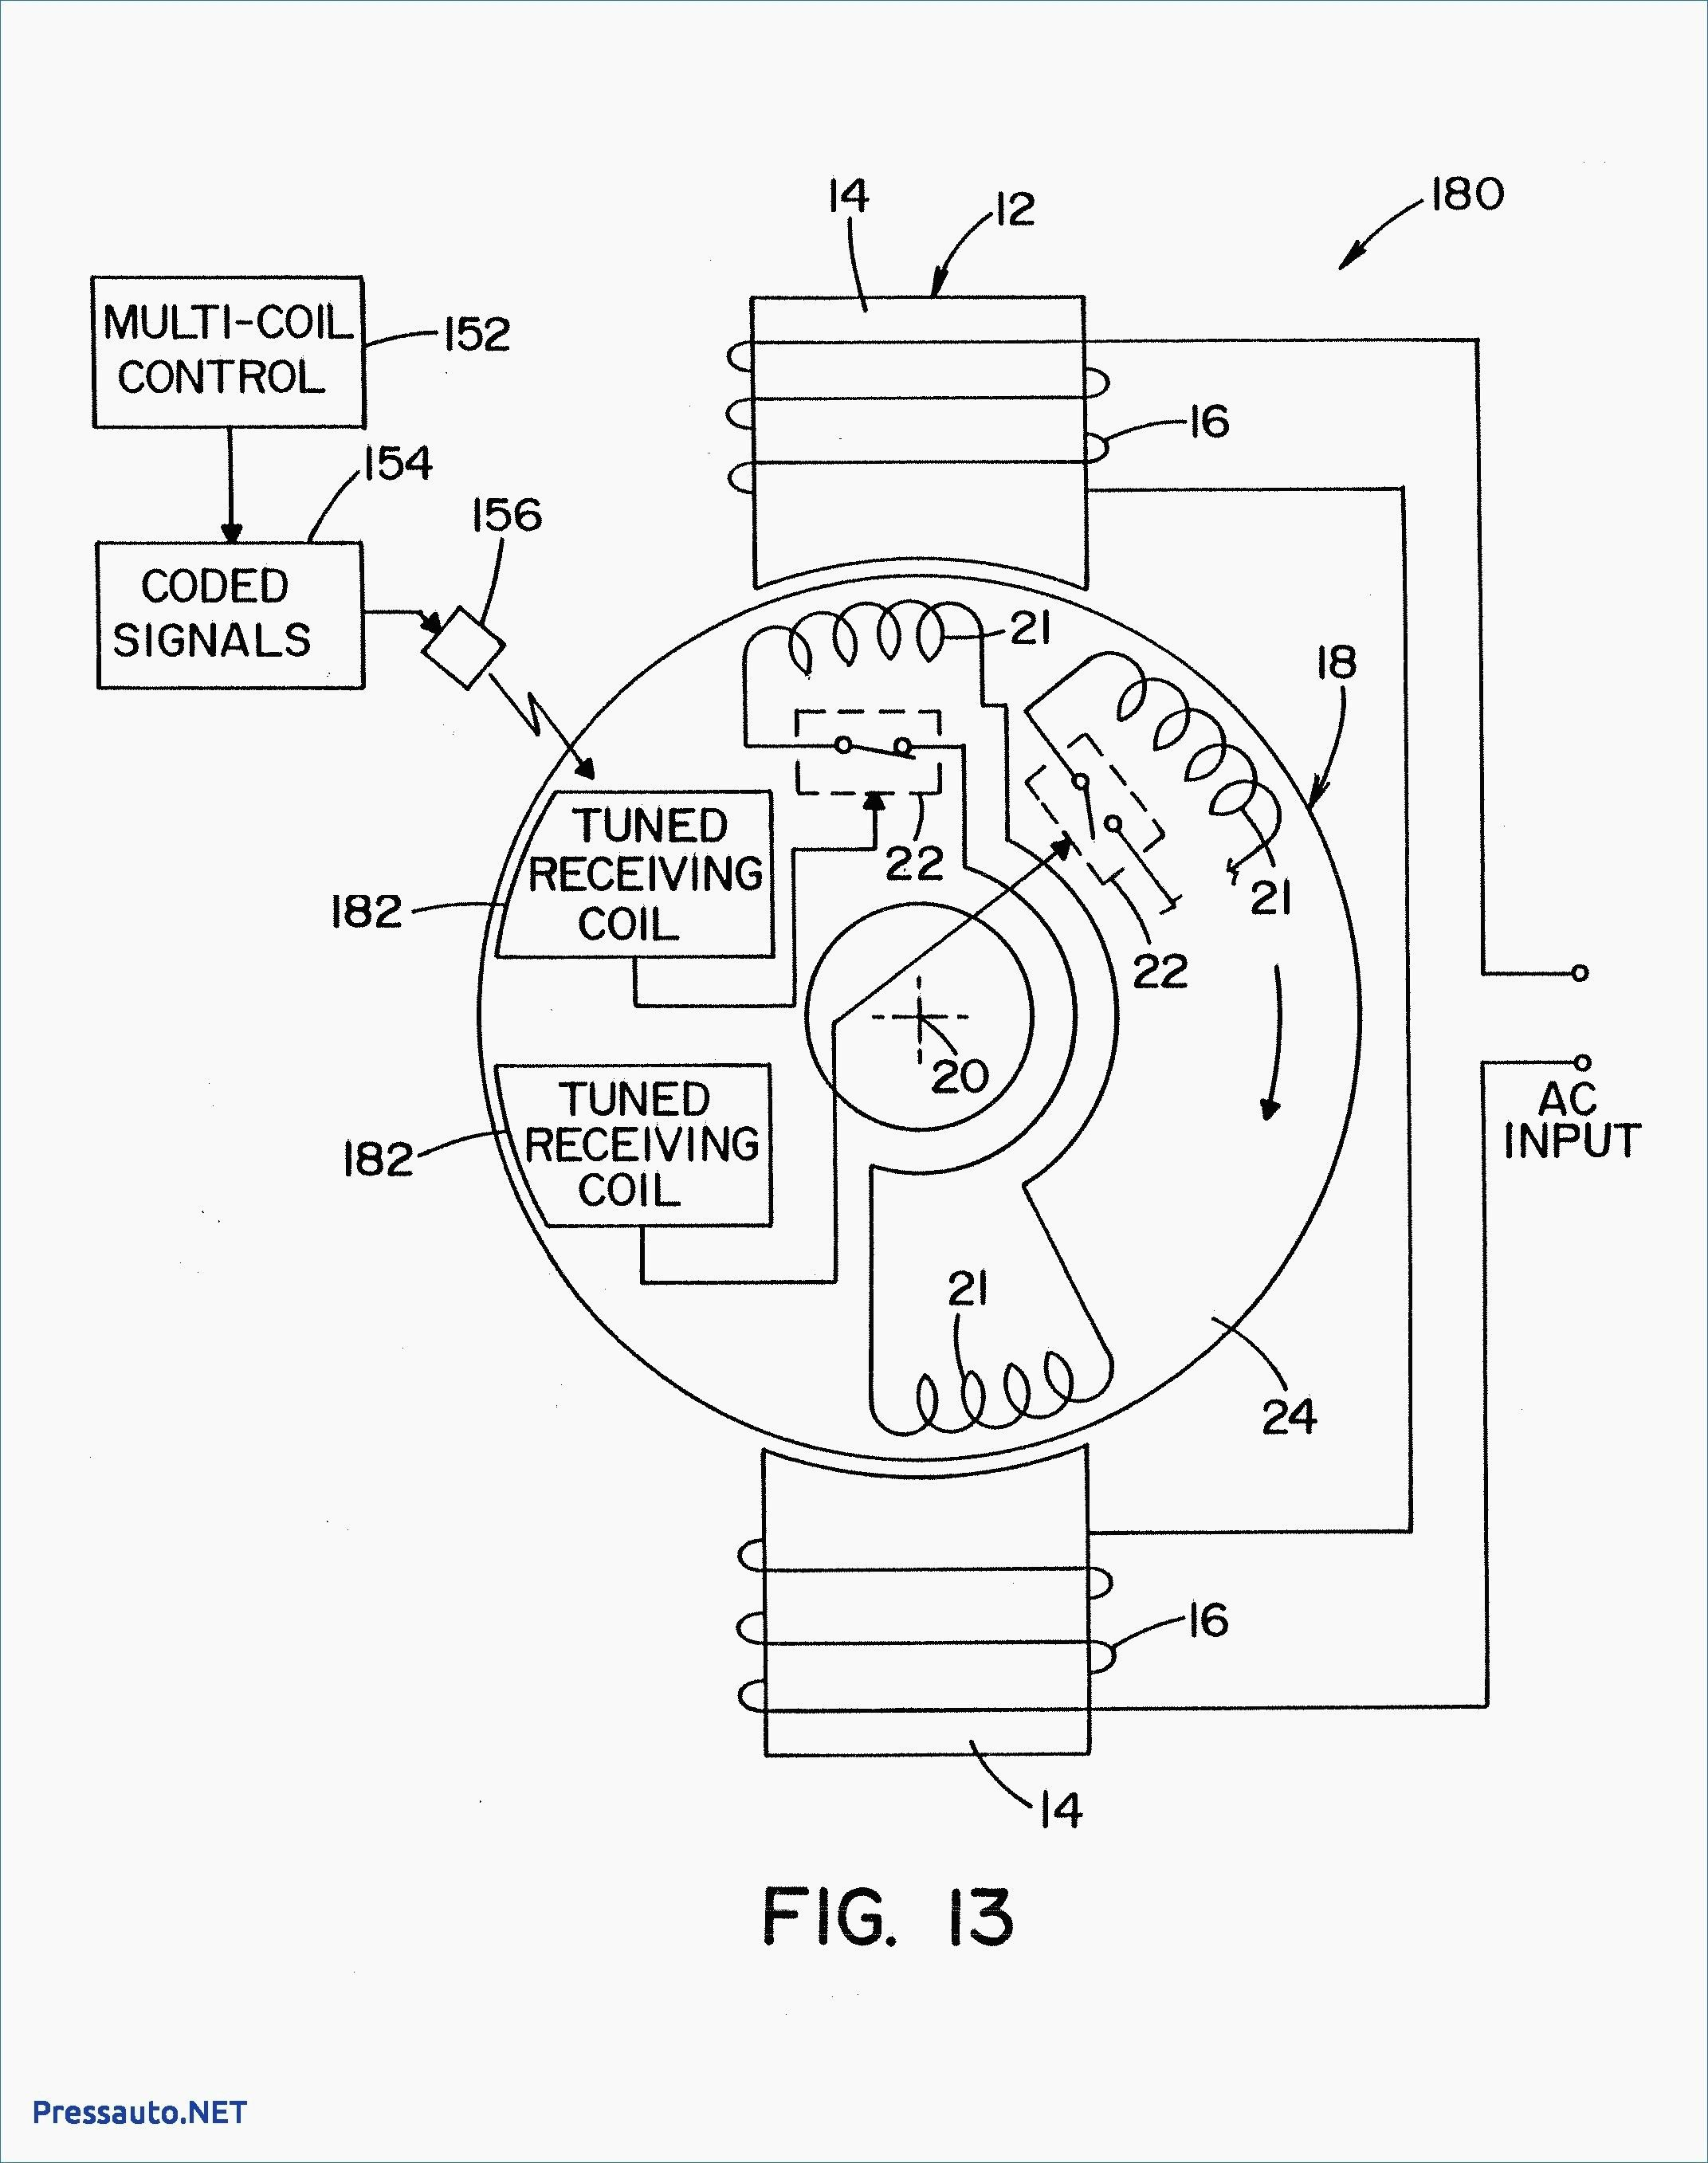 New Auto Gate Motor Wiring Diagram Pdf Diagram, Gate